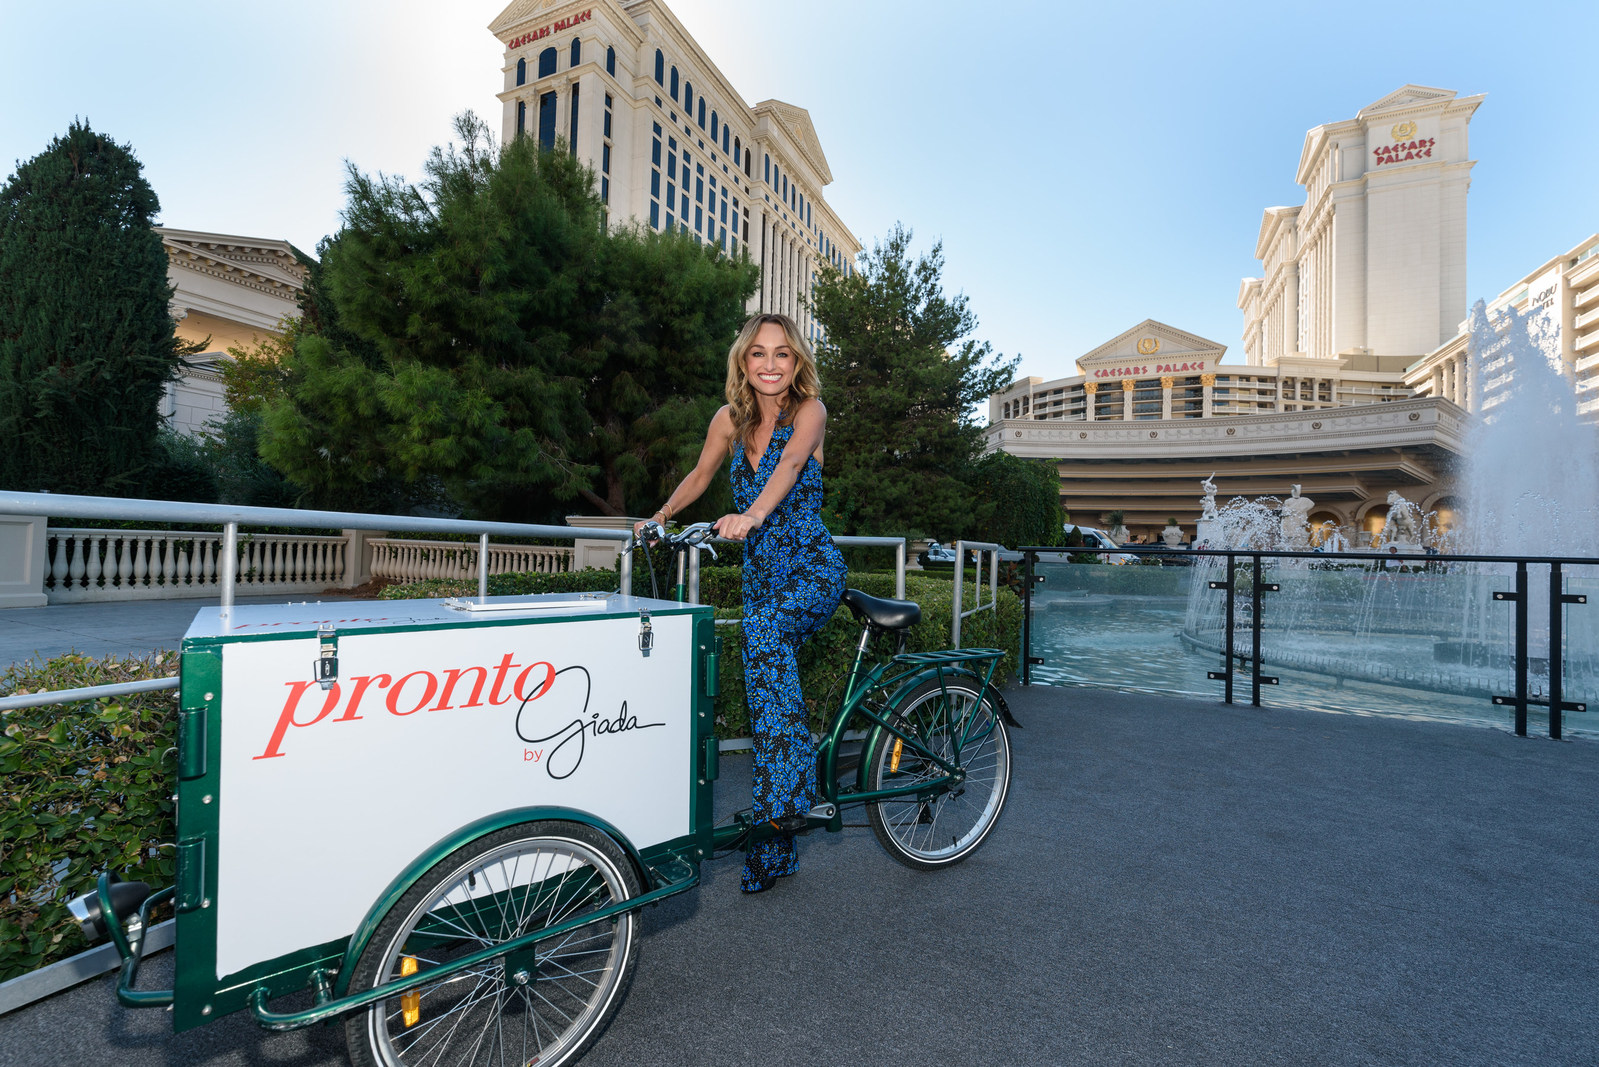 Florida-Based NY Deli Concept to Franchise and Pronto by Giada ... on